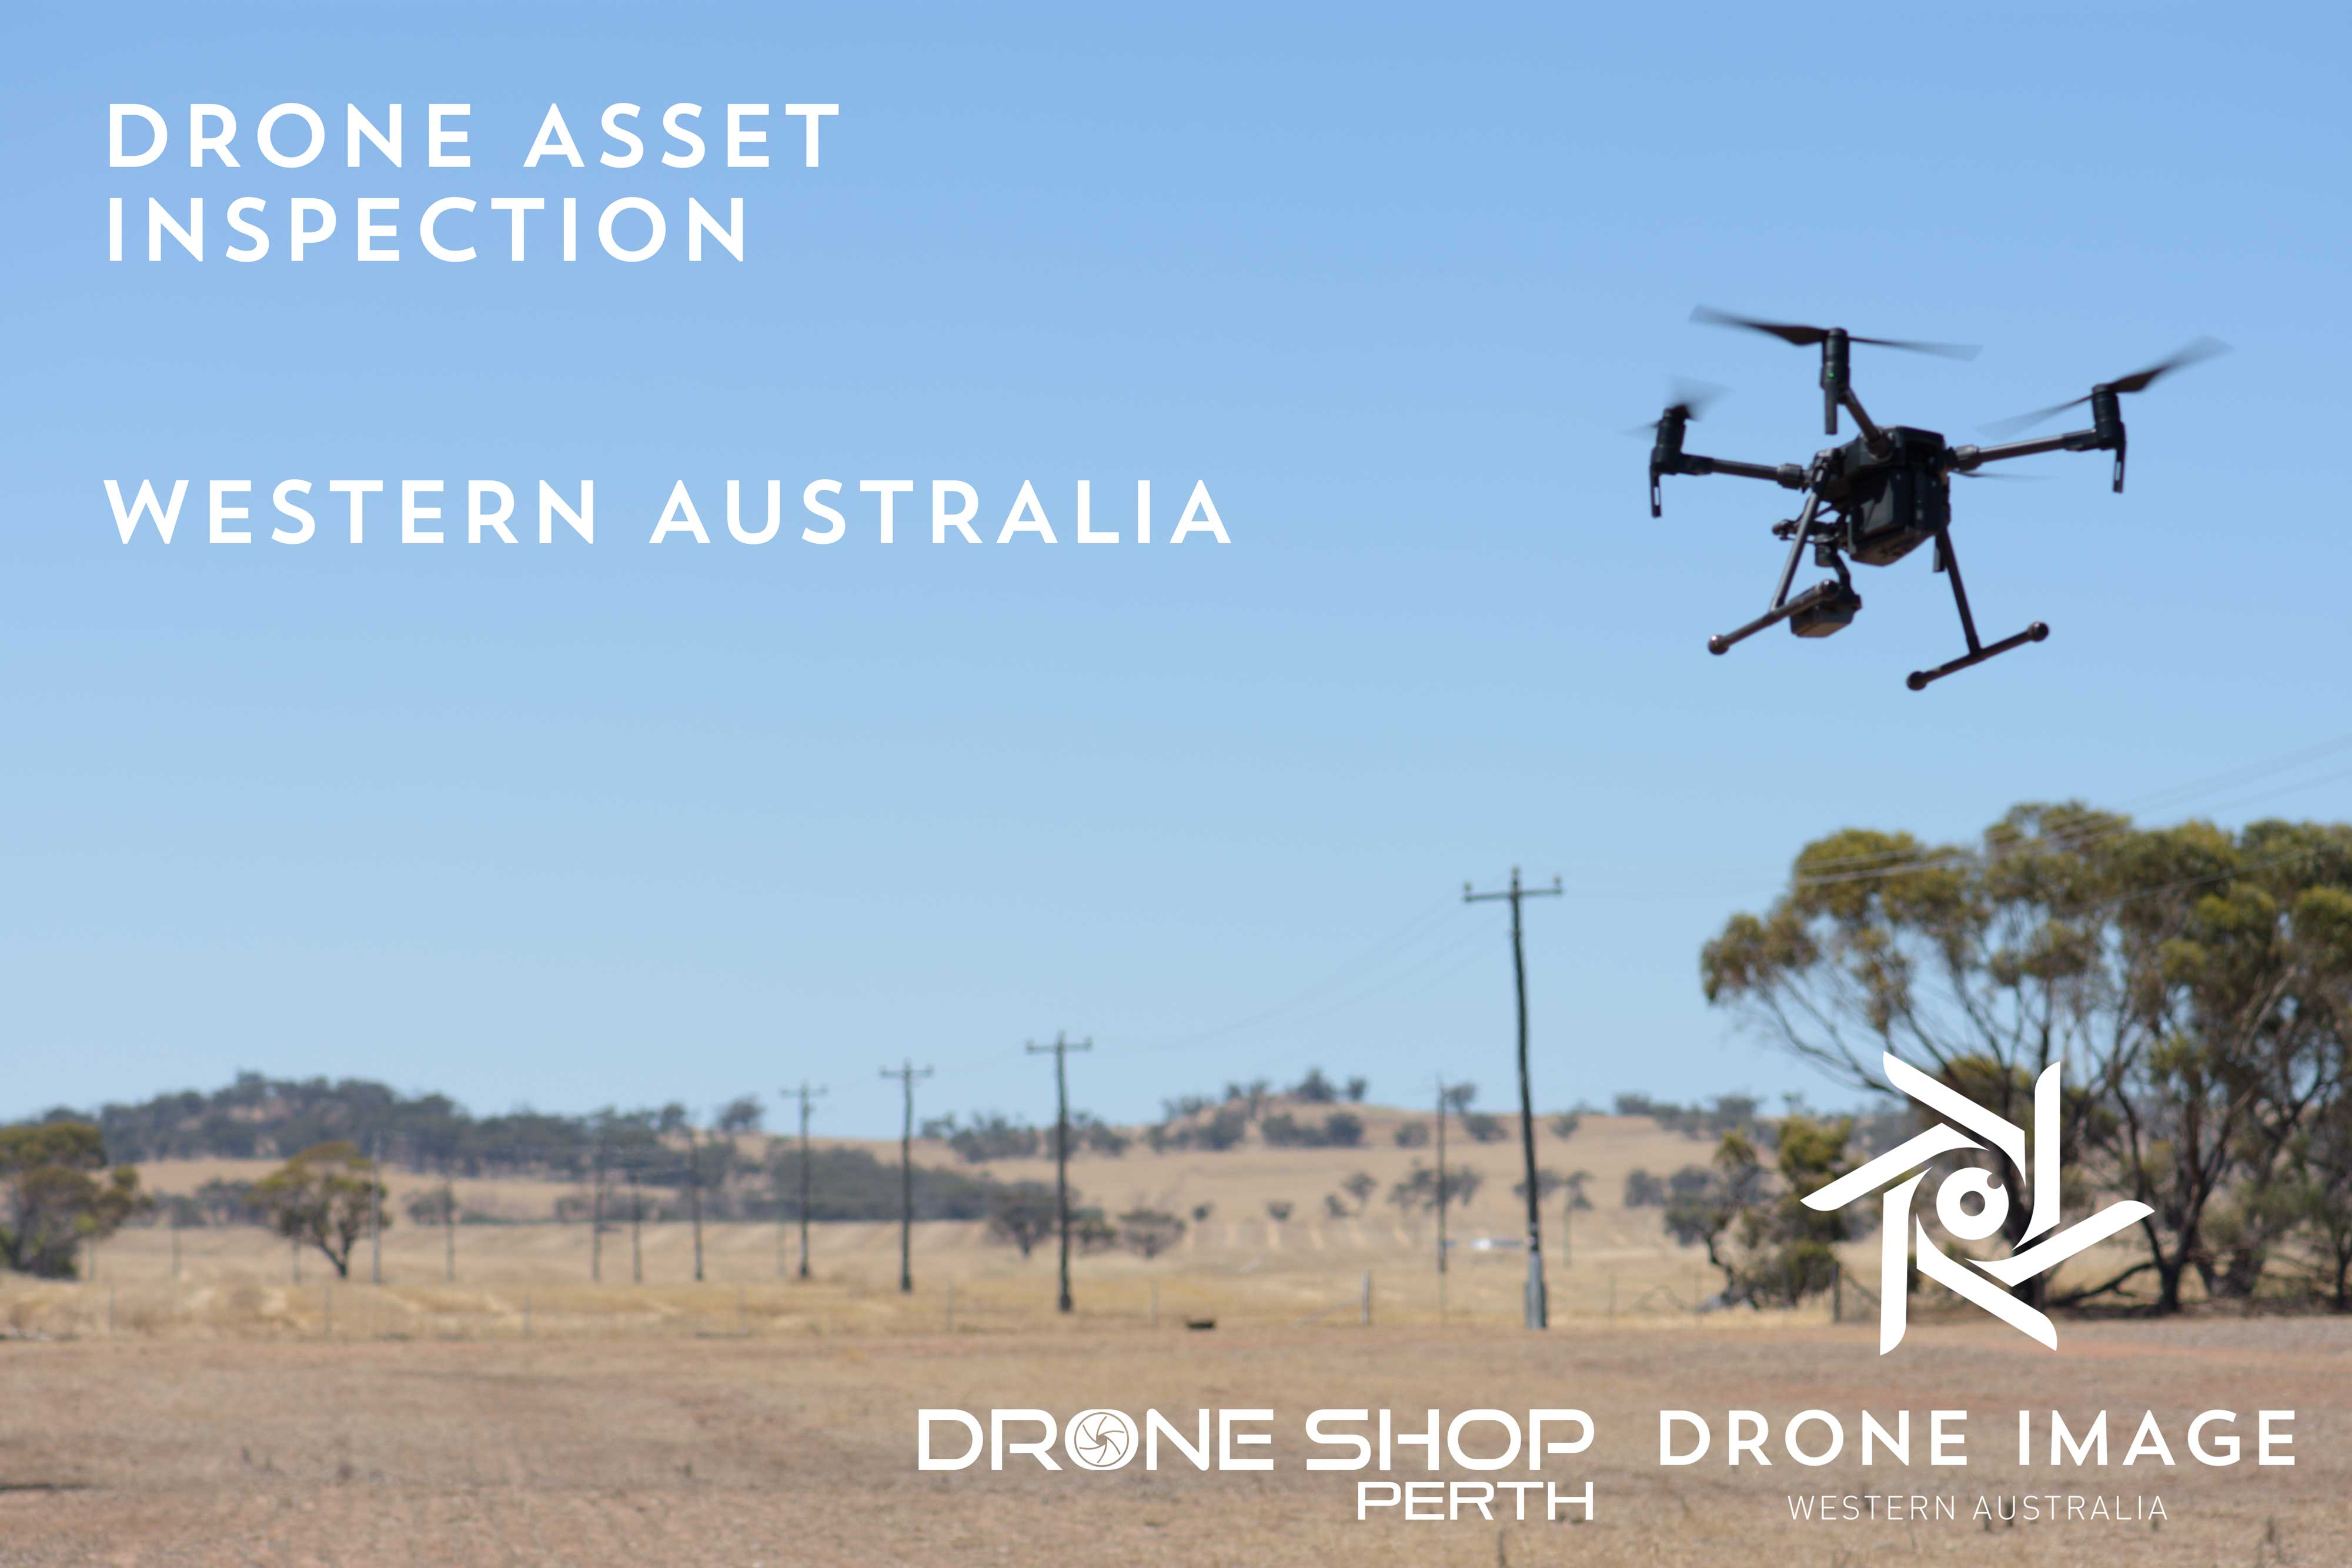 Drone Image Drone Shop Perth Power Line Drone Asset Inspection Western Australia